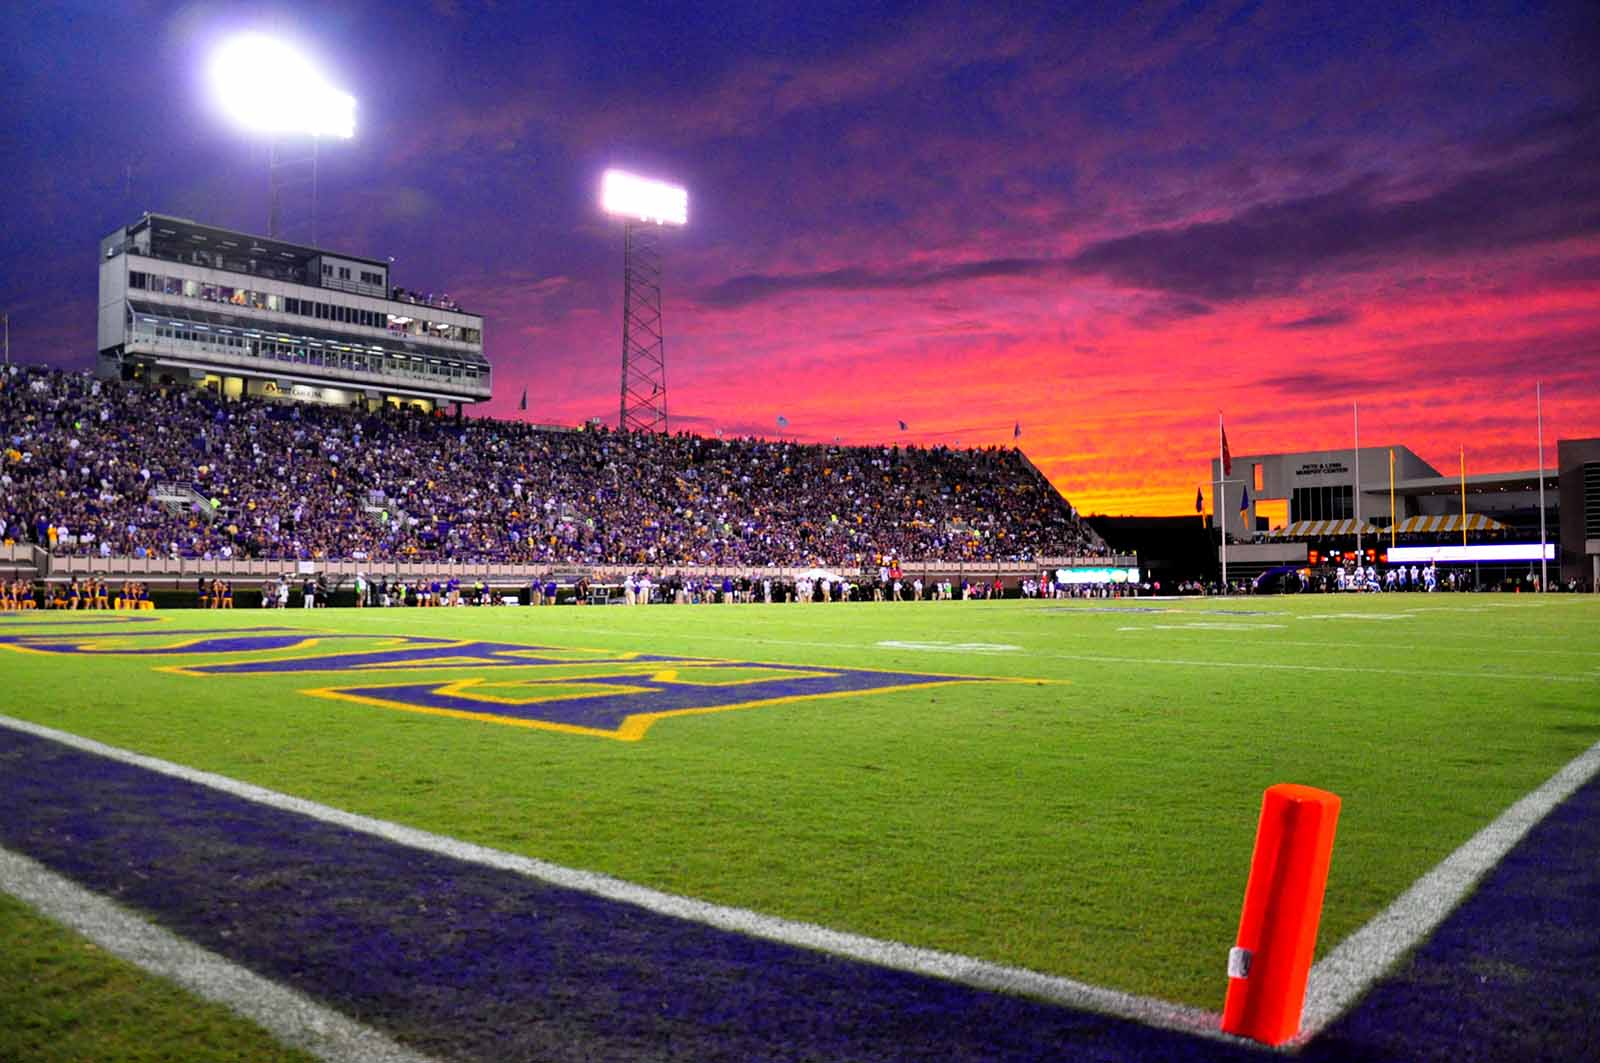 Purple sky over Dowdy-Ficklen Stadium by W.A. Myatt